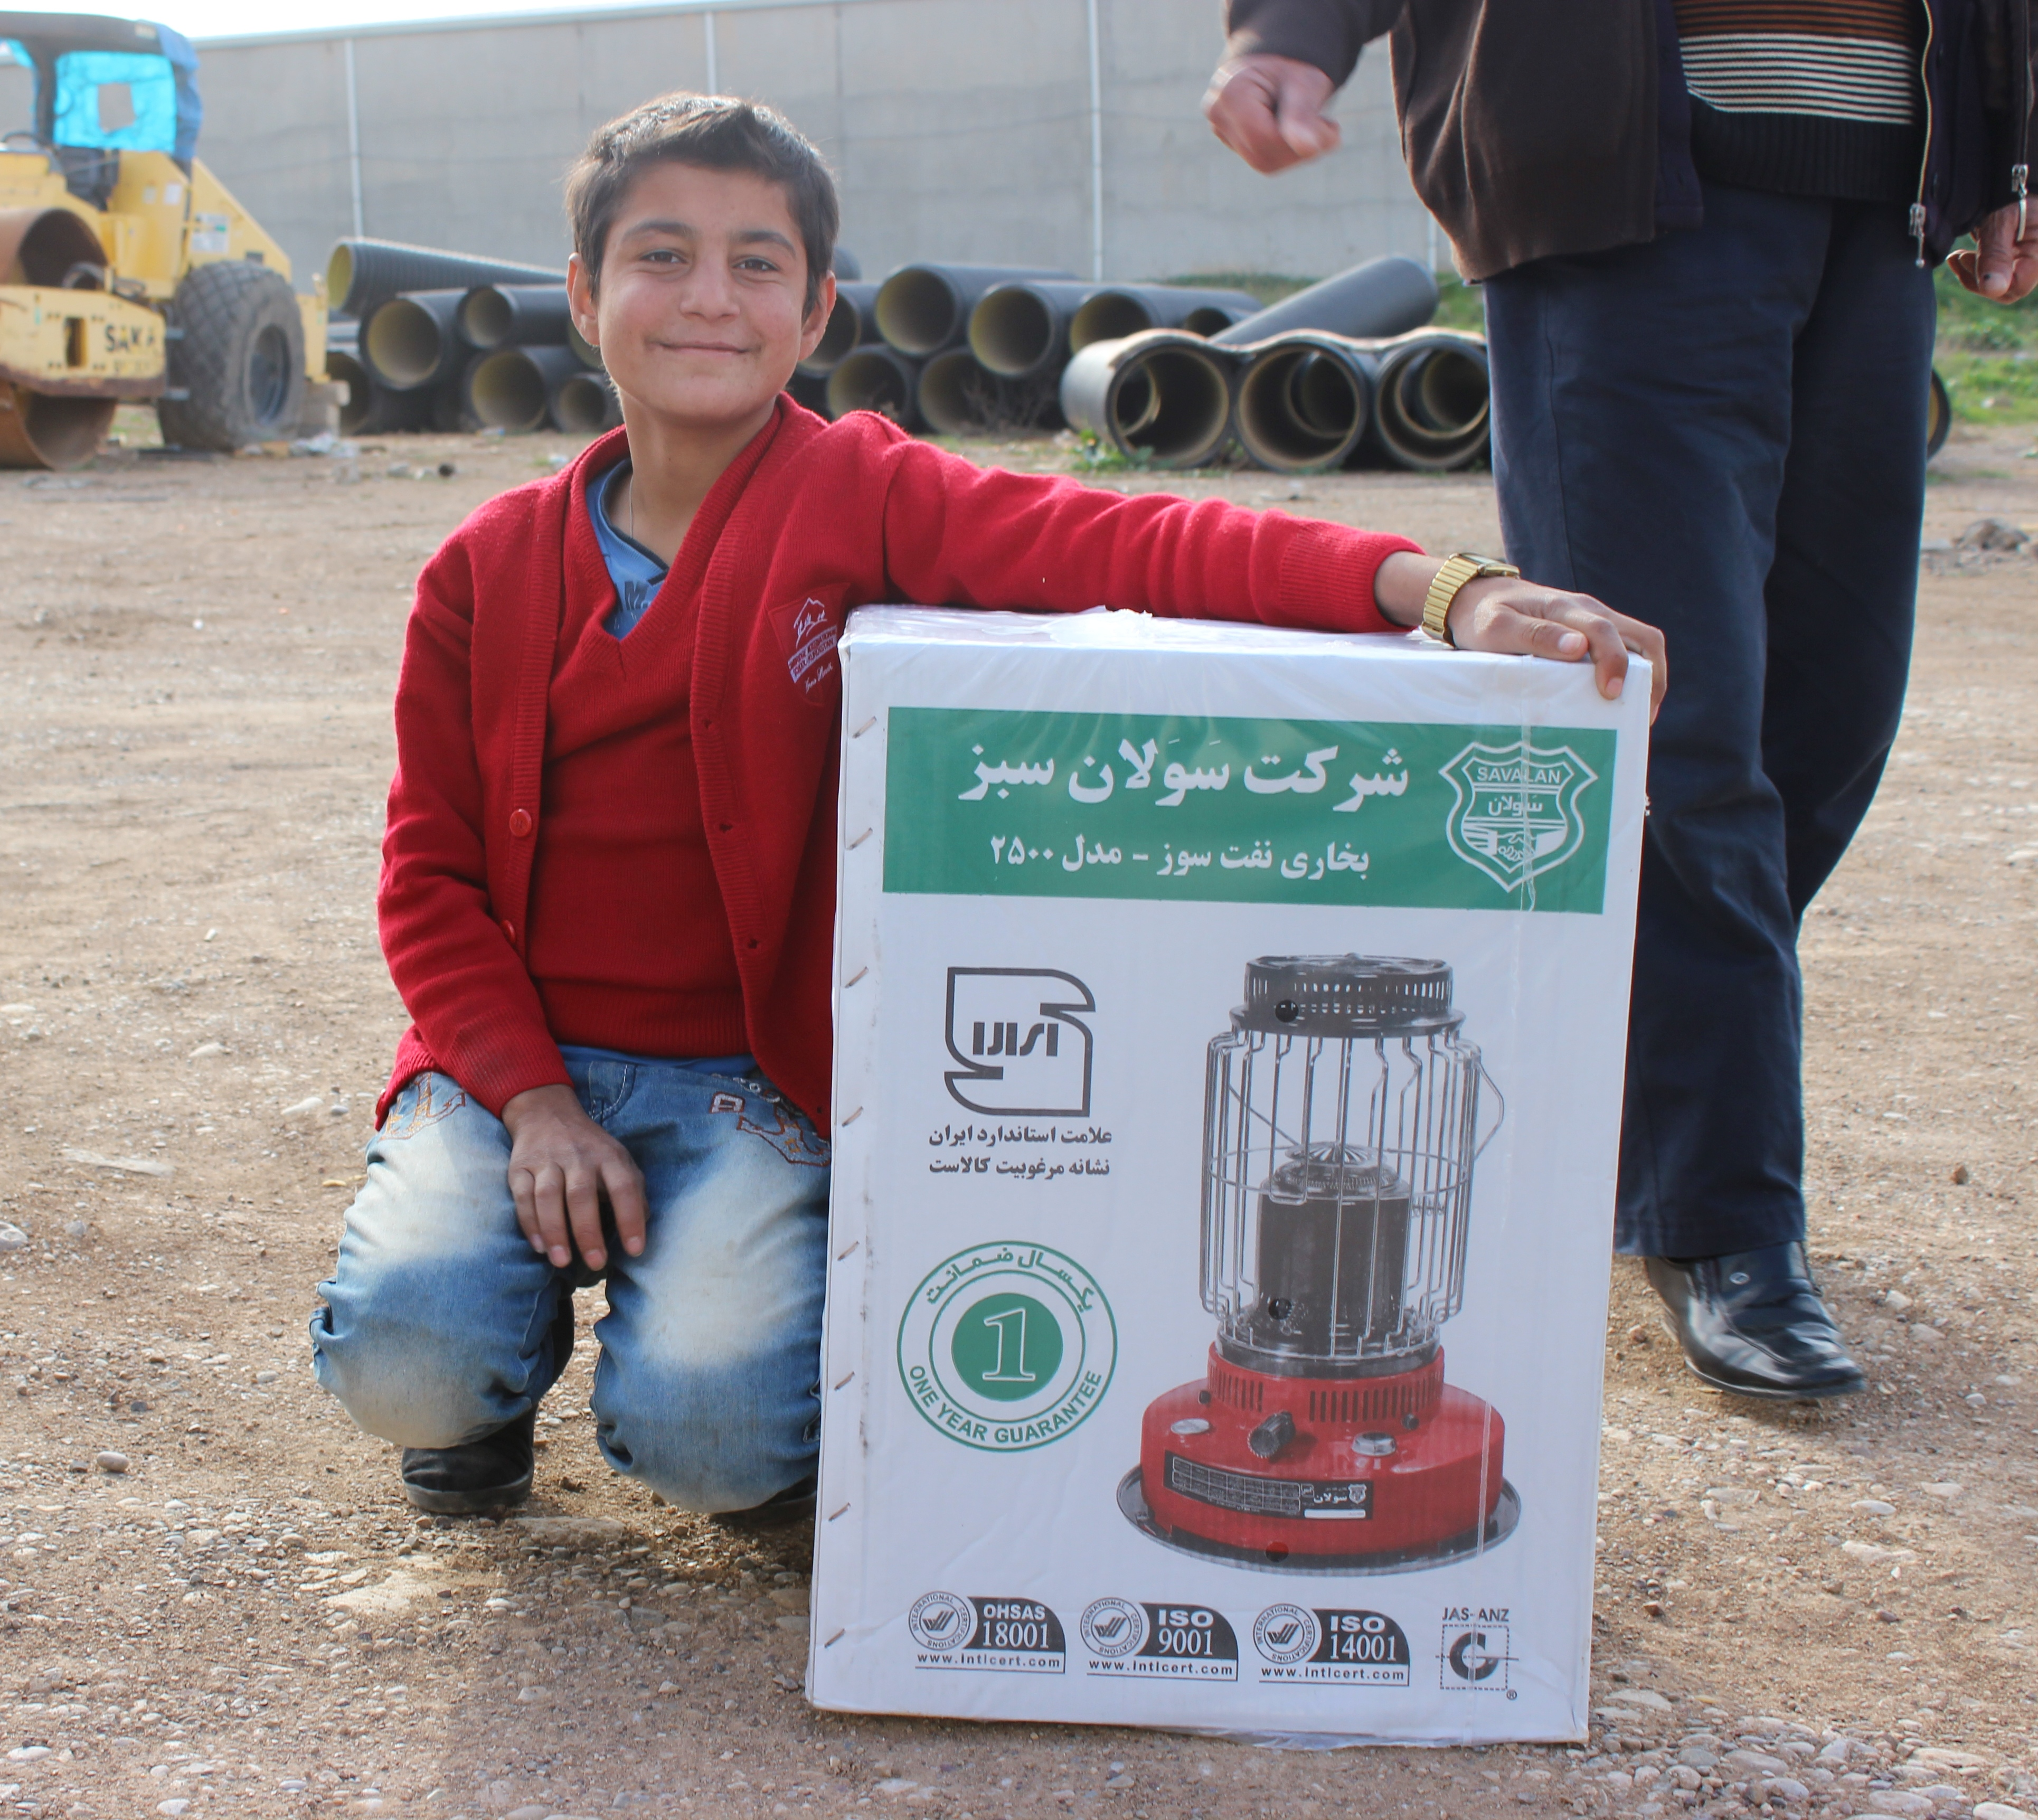 Heater distributed to refugees in Iraq